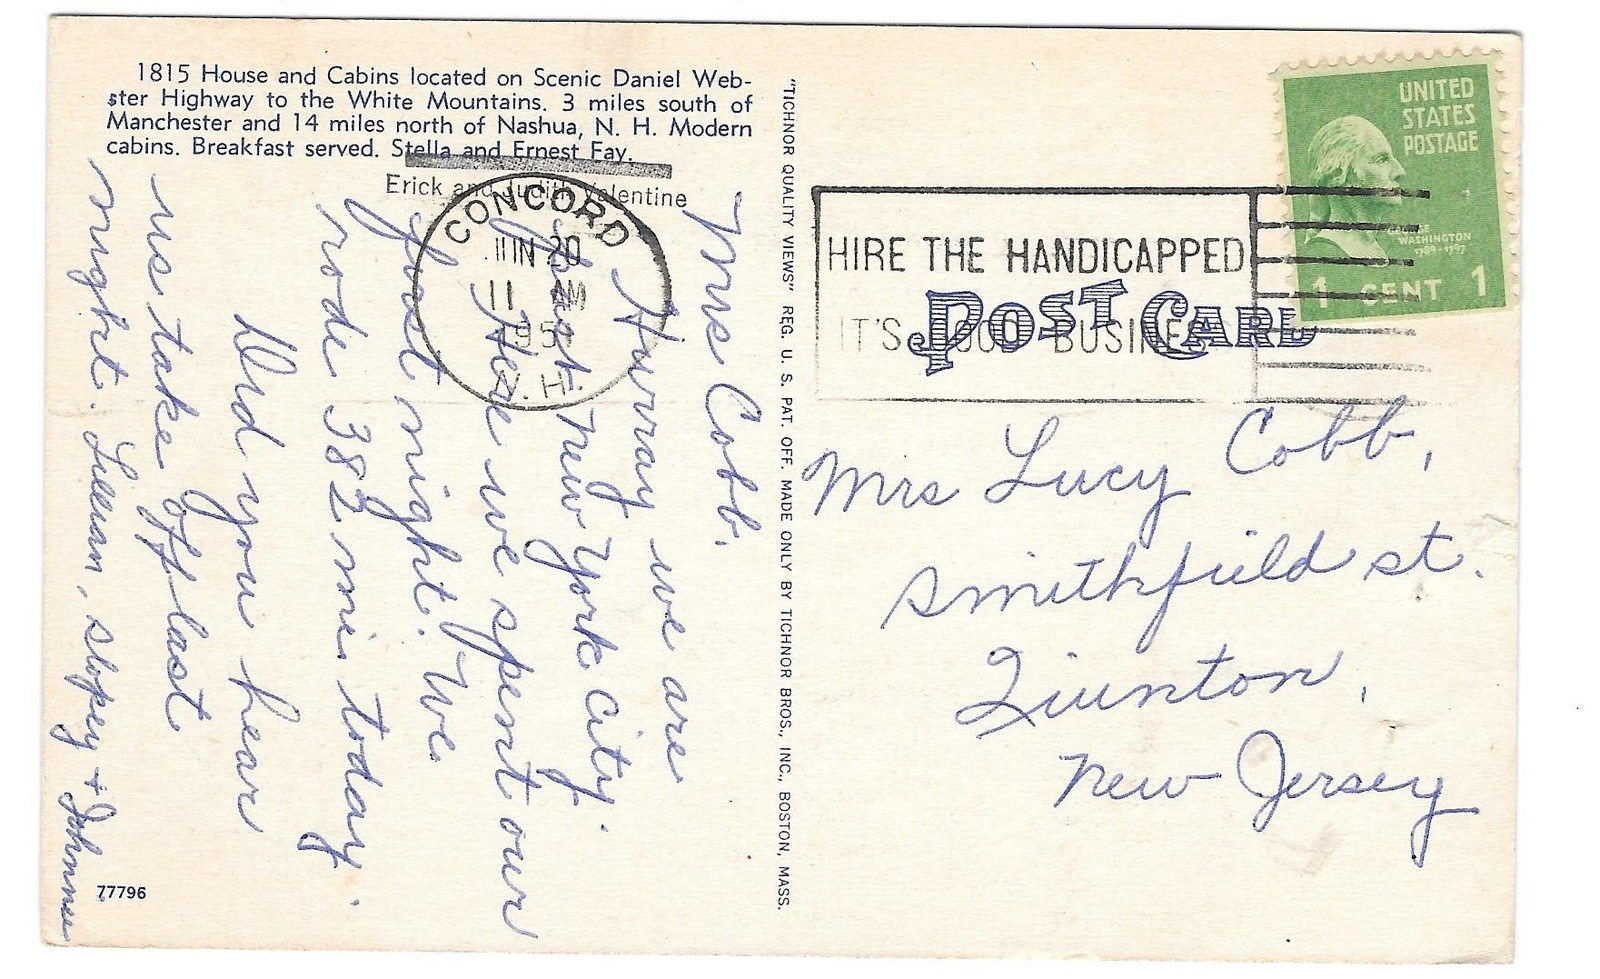 1815 House Motel Reeds Ferry NH Cabins White Mountains Vintage 1951 Postcard